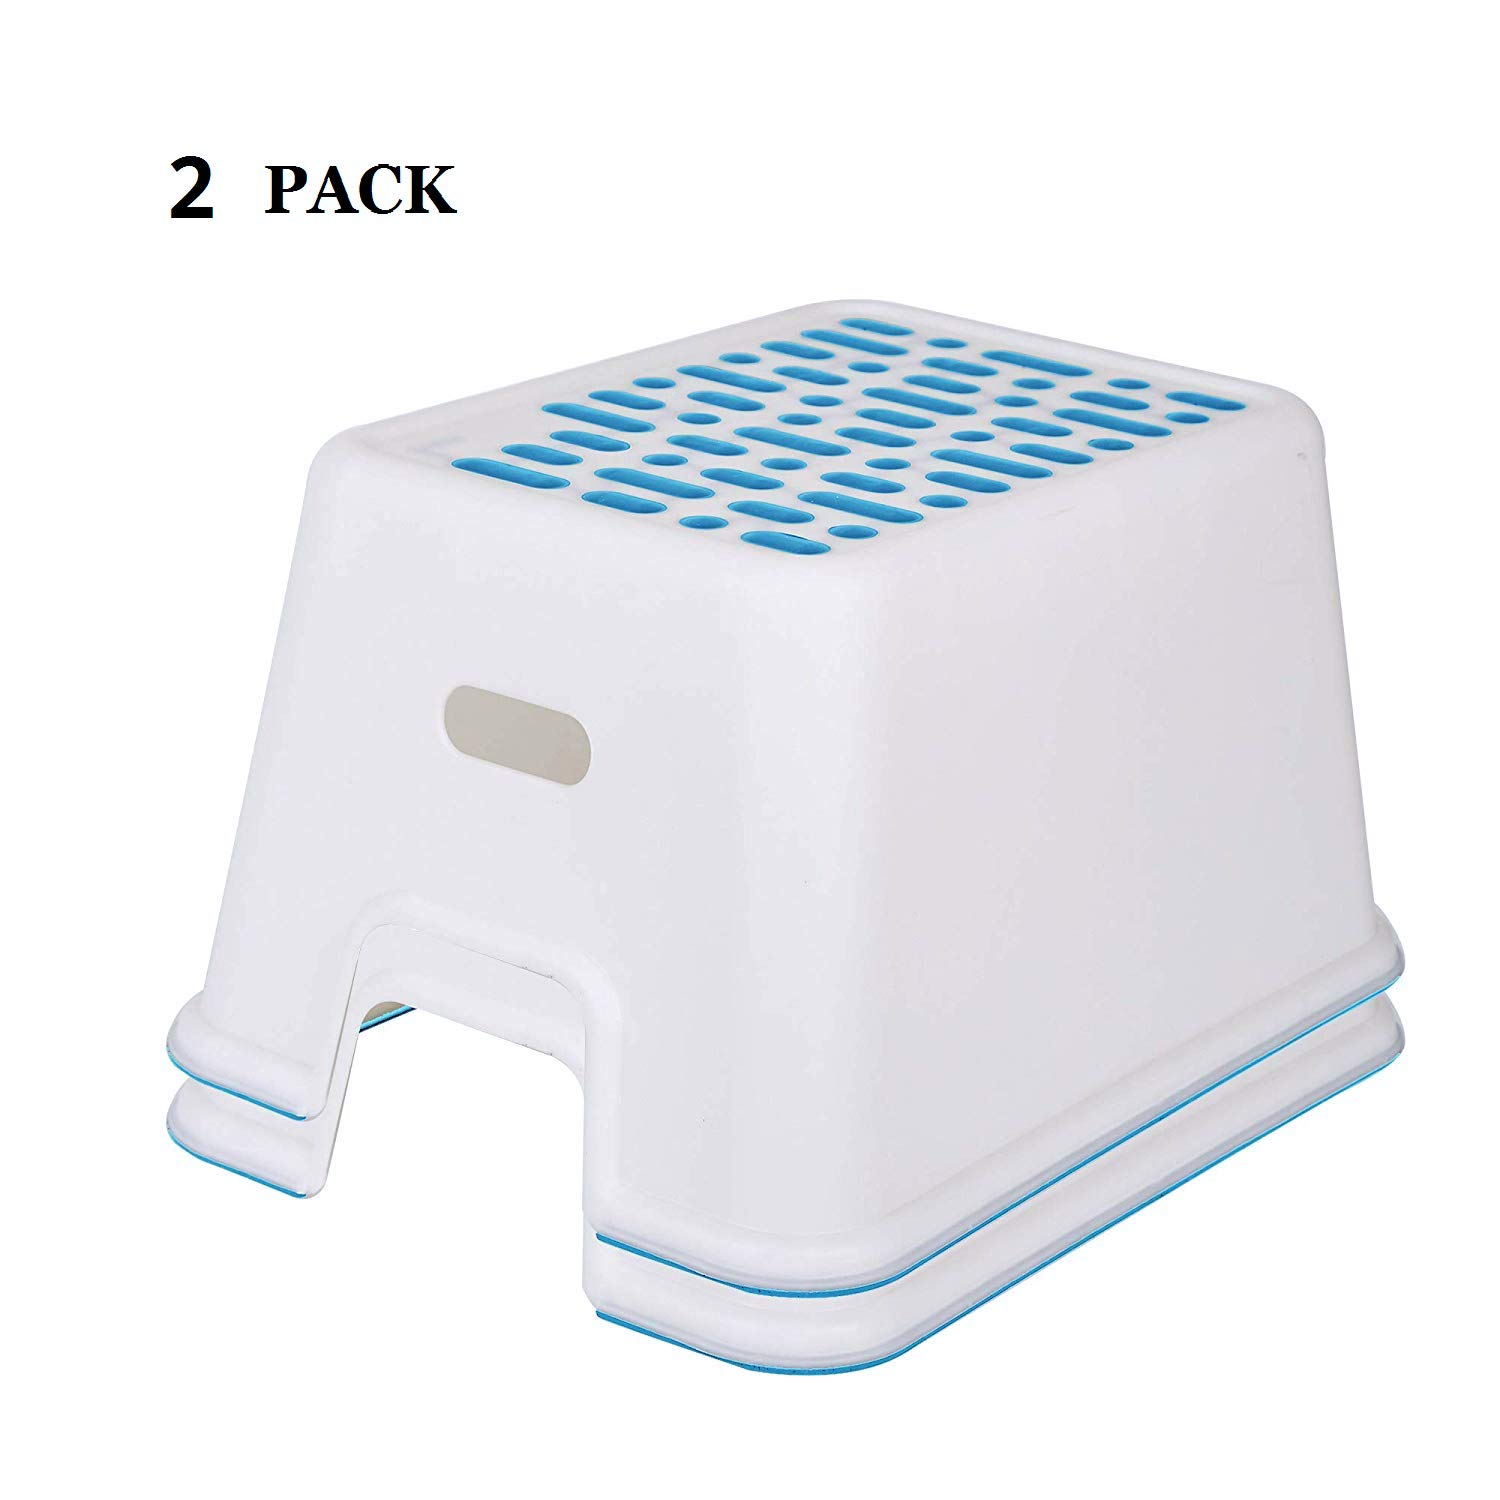 """Adult Bathroom Anti-Skid Stool,5/""""Grey dporticus 2 Pack Kids Non-Slip Step Stools for Toilet Potty Training"""